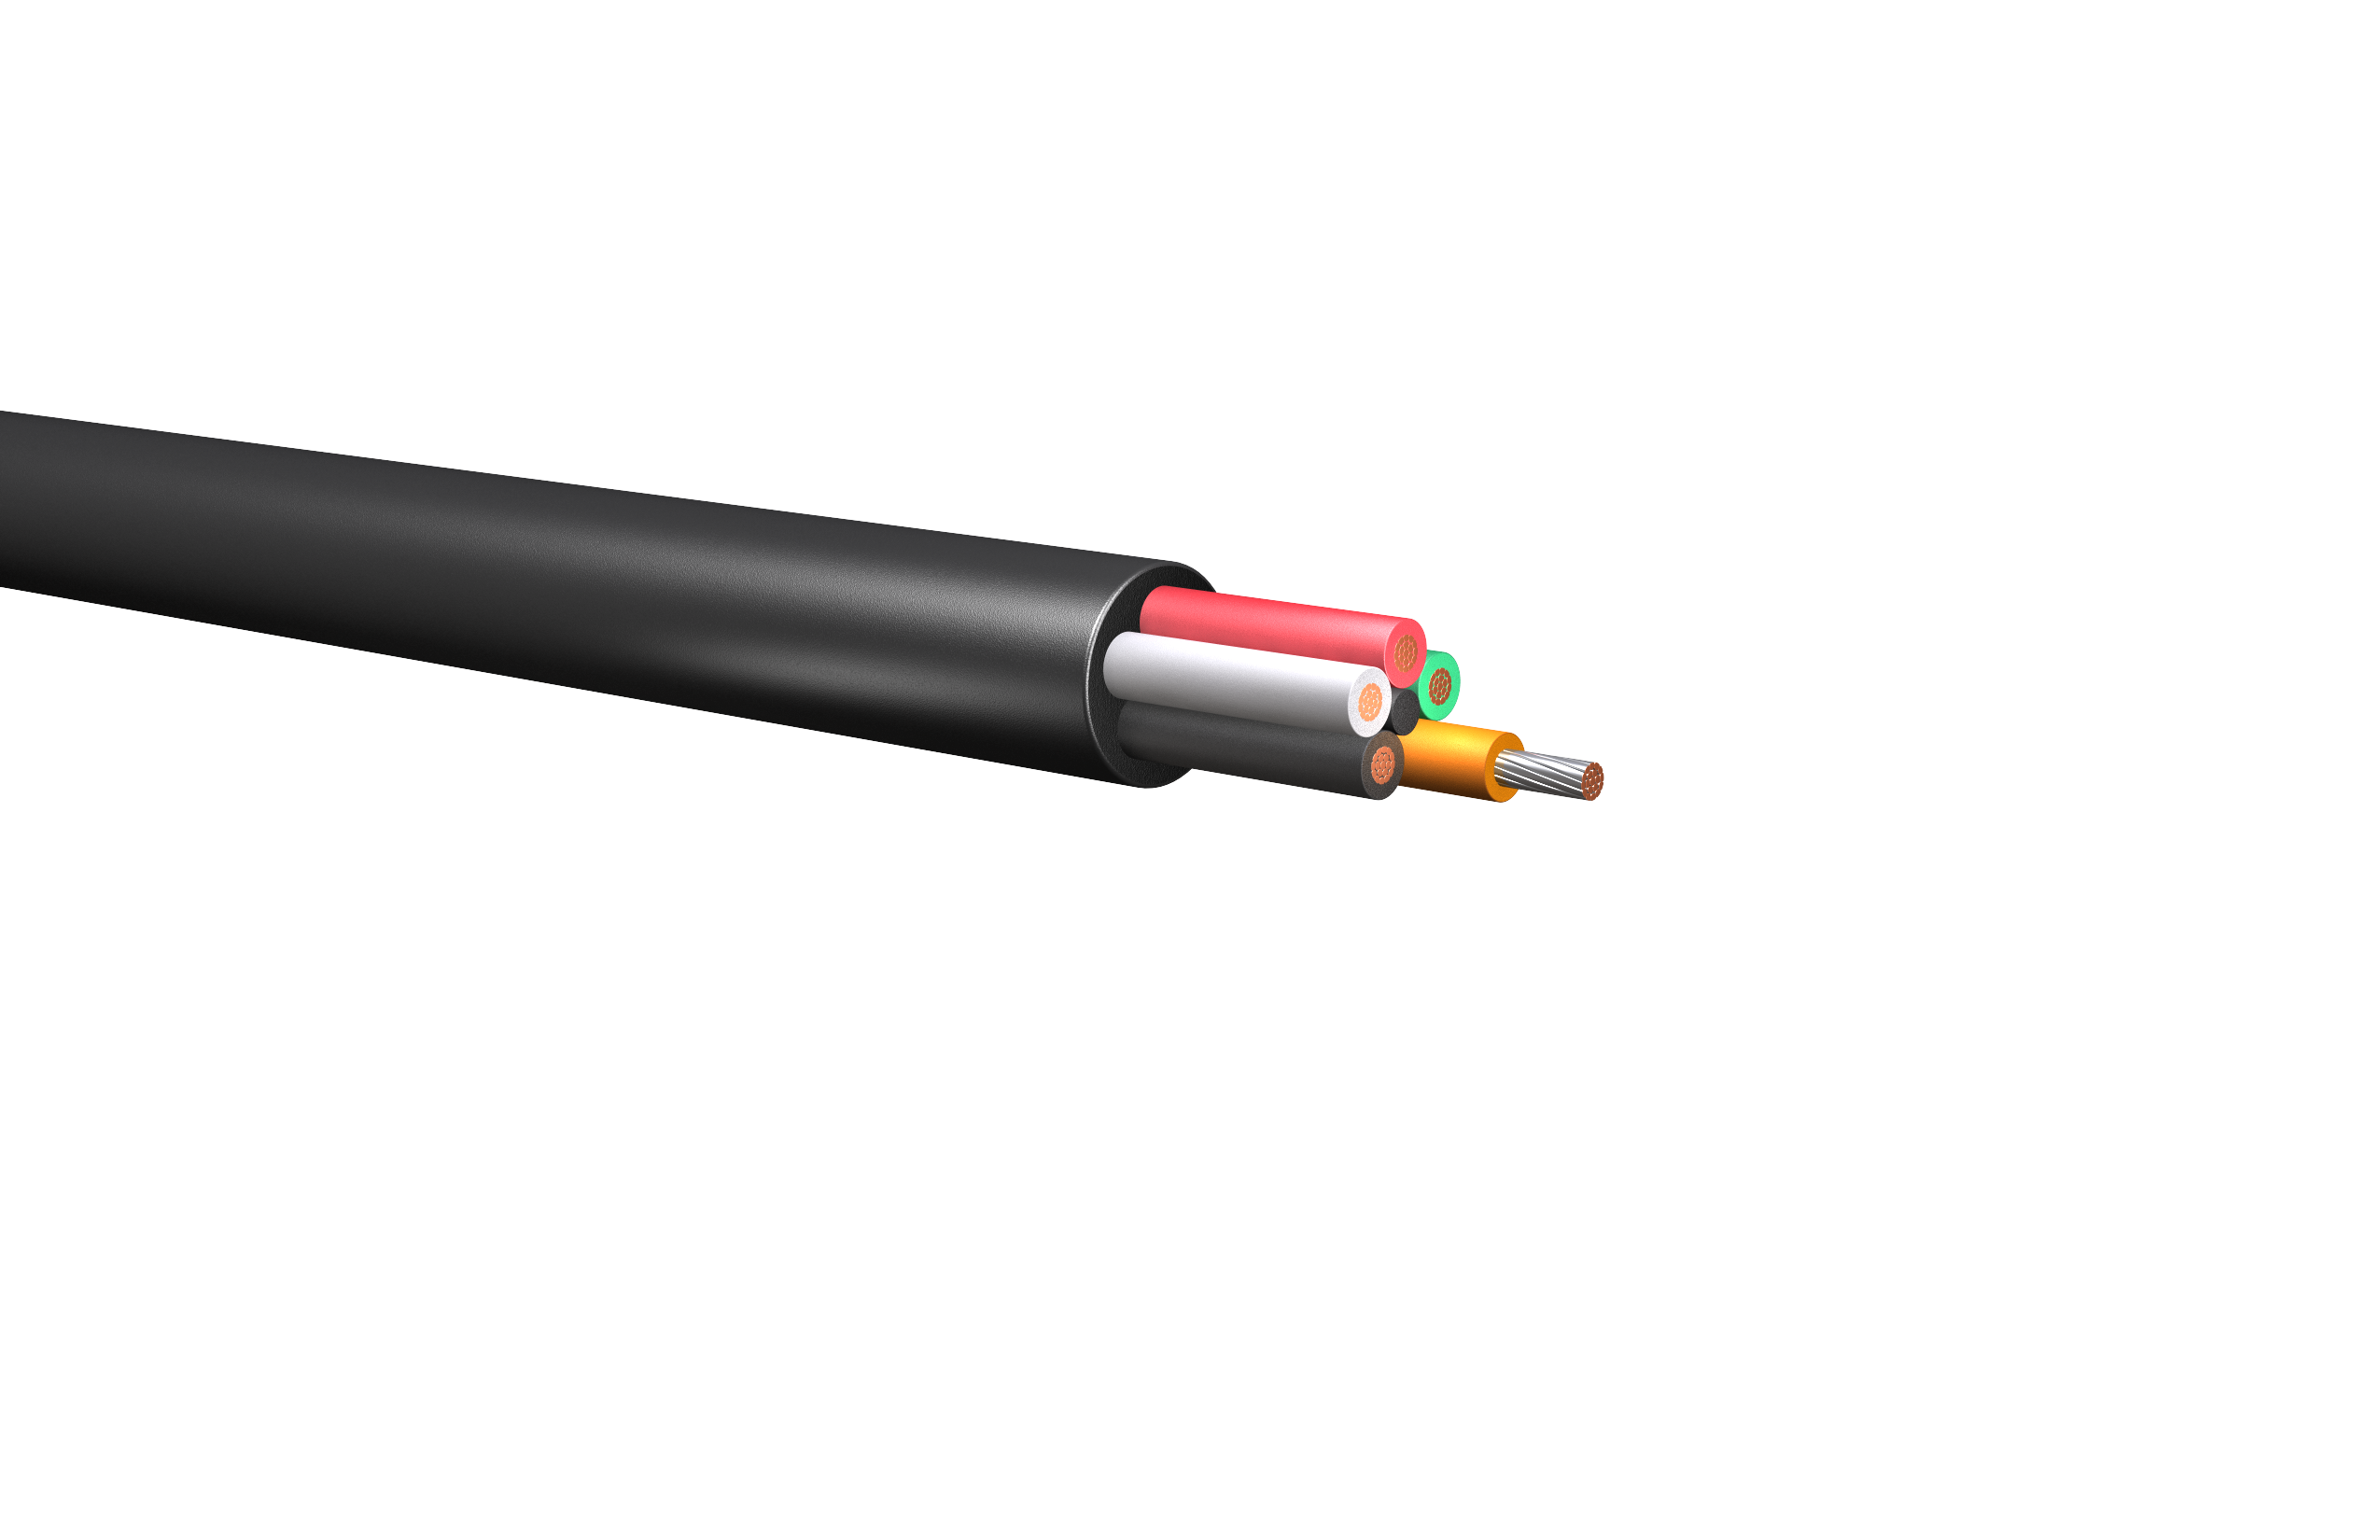 HW273: 600V/1kV Five Conductor Power Cable, Unarmored